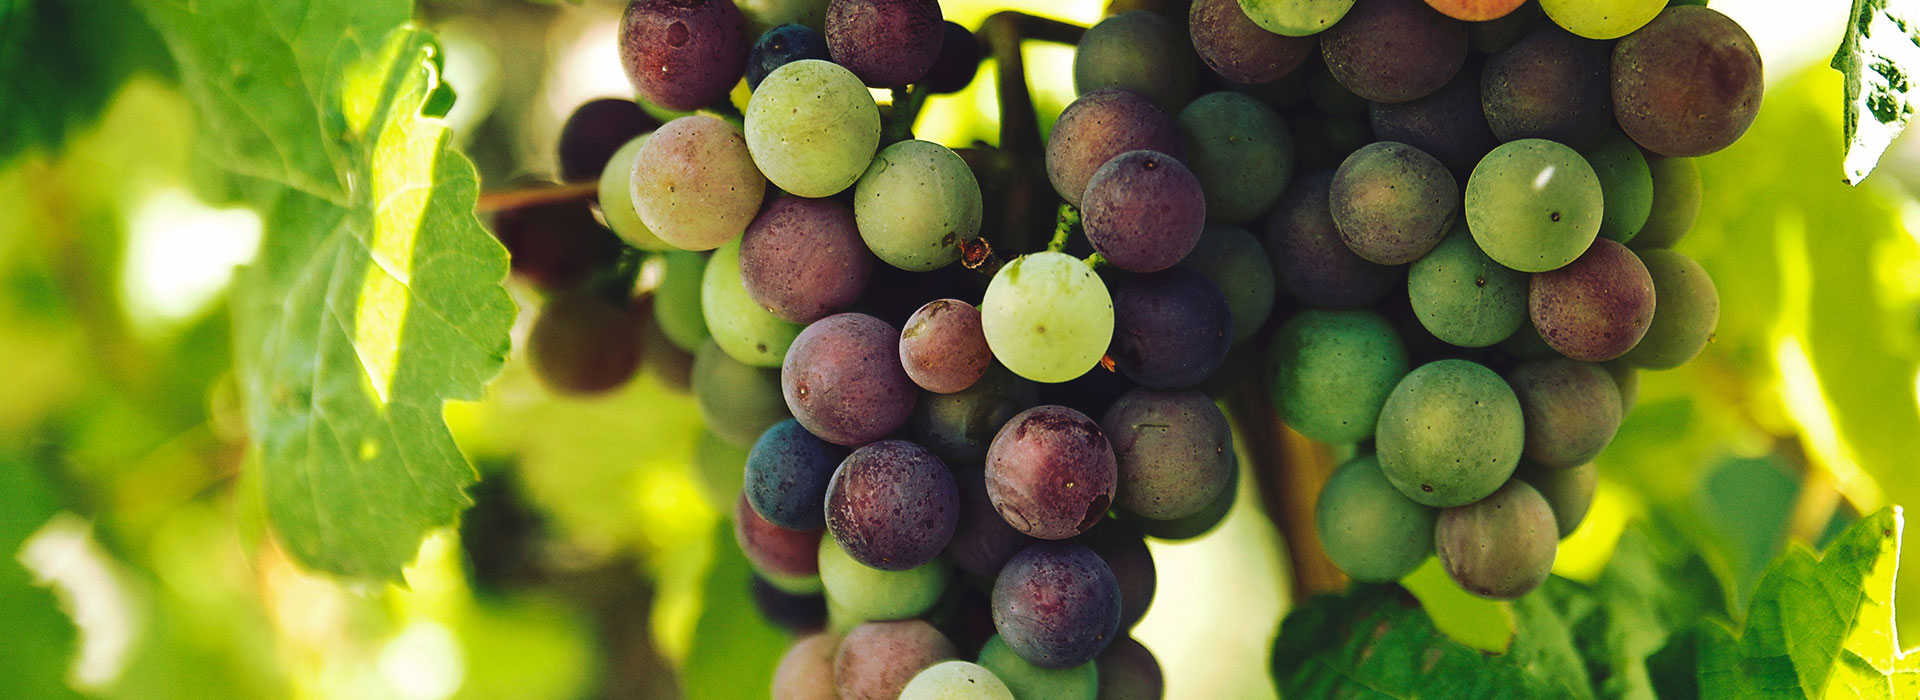 veraison in the vineyard